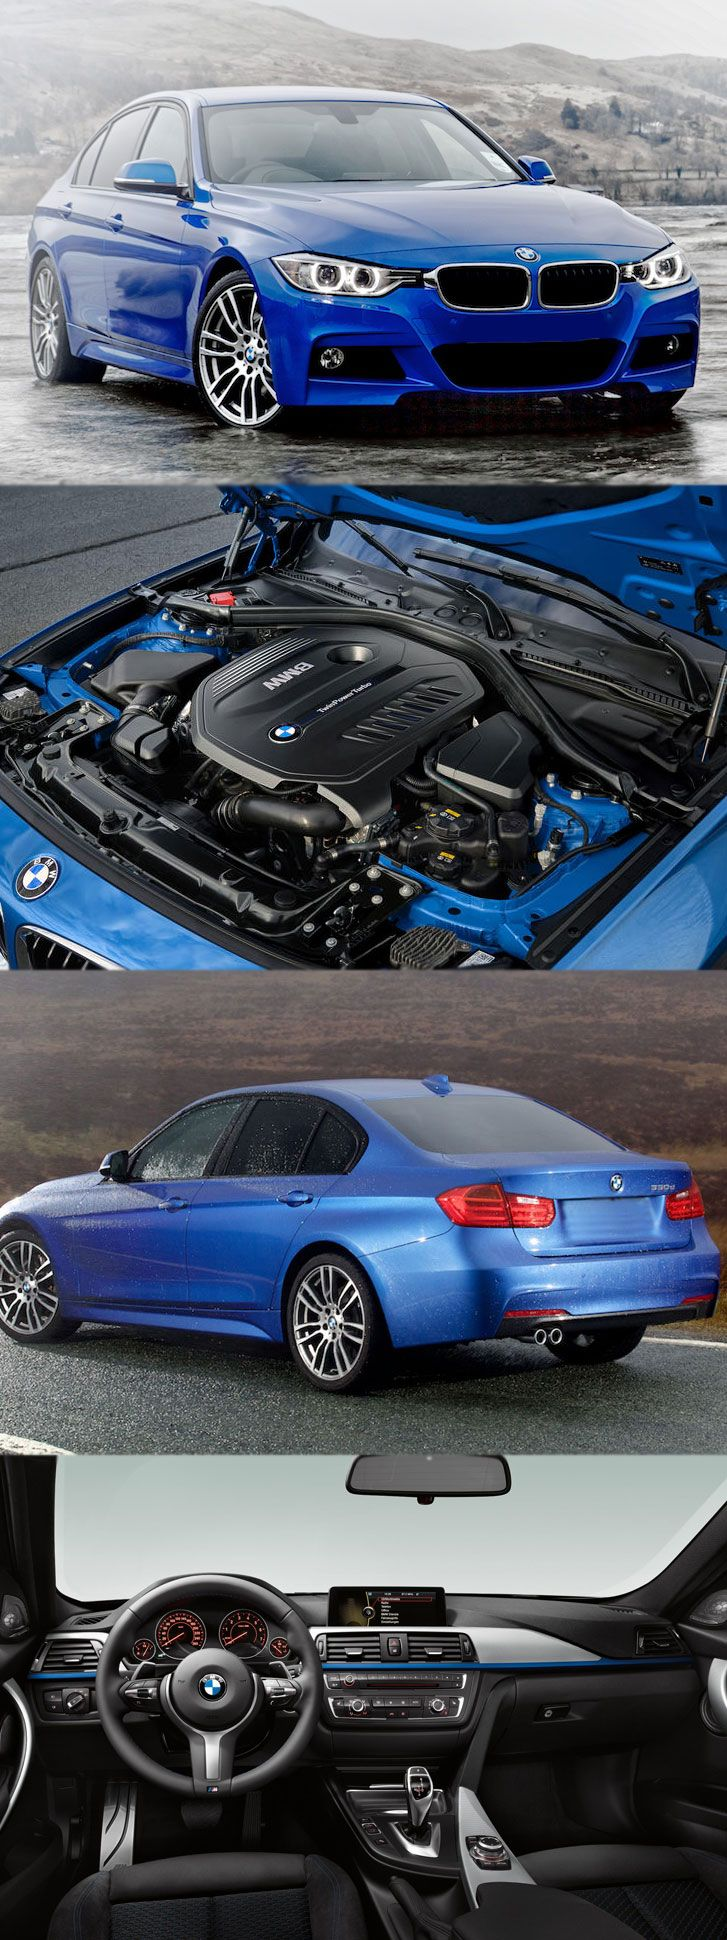 48 best bmw 3 series images on pinterest engine motor engine and bmw 330d a ride to enjoy for more information visit here https fandeluxe Gallery